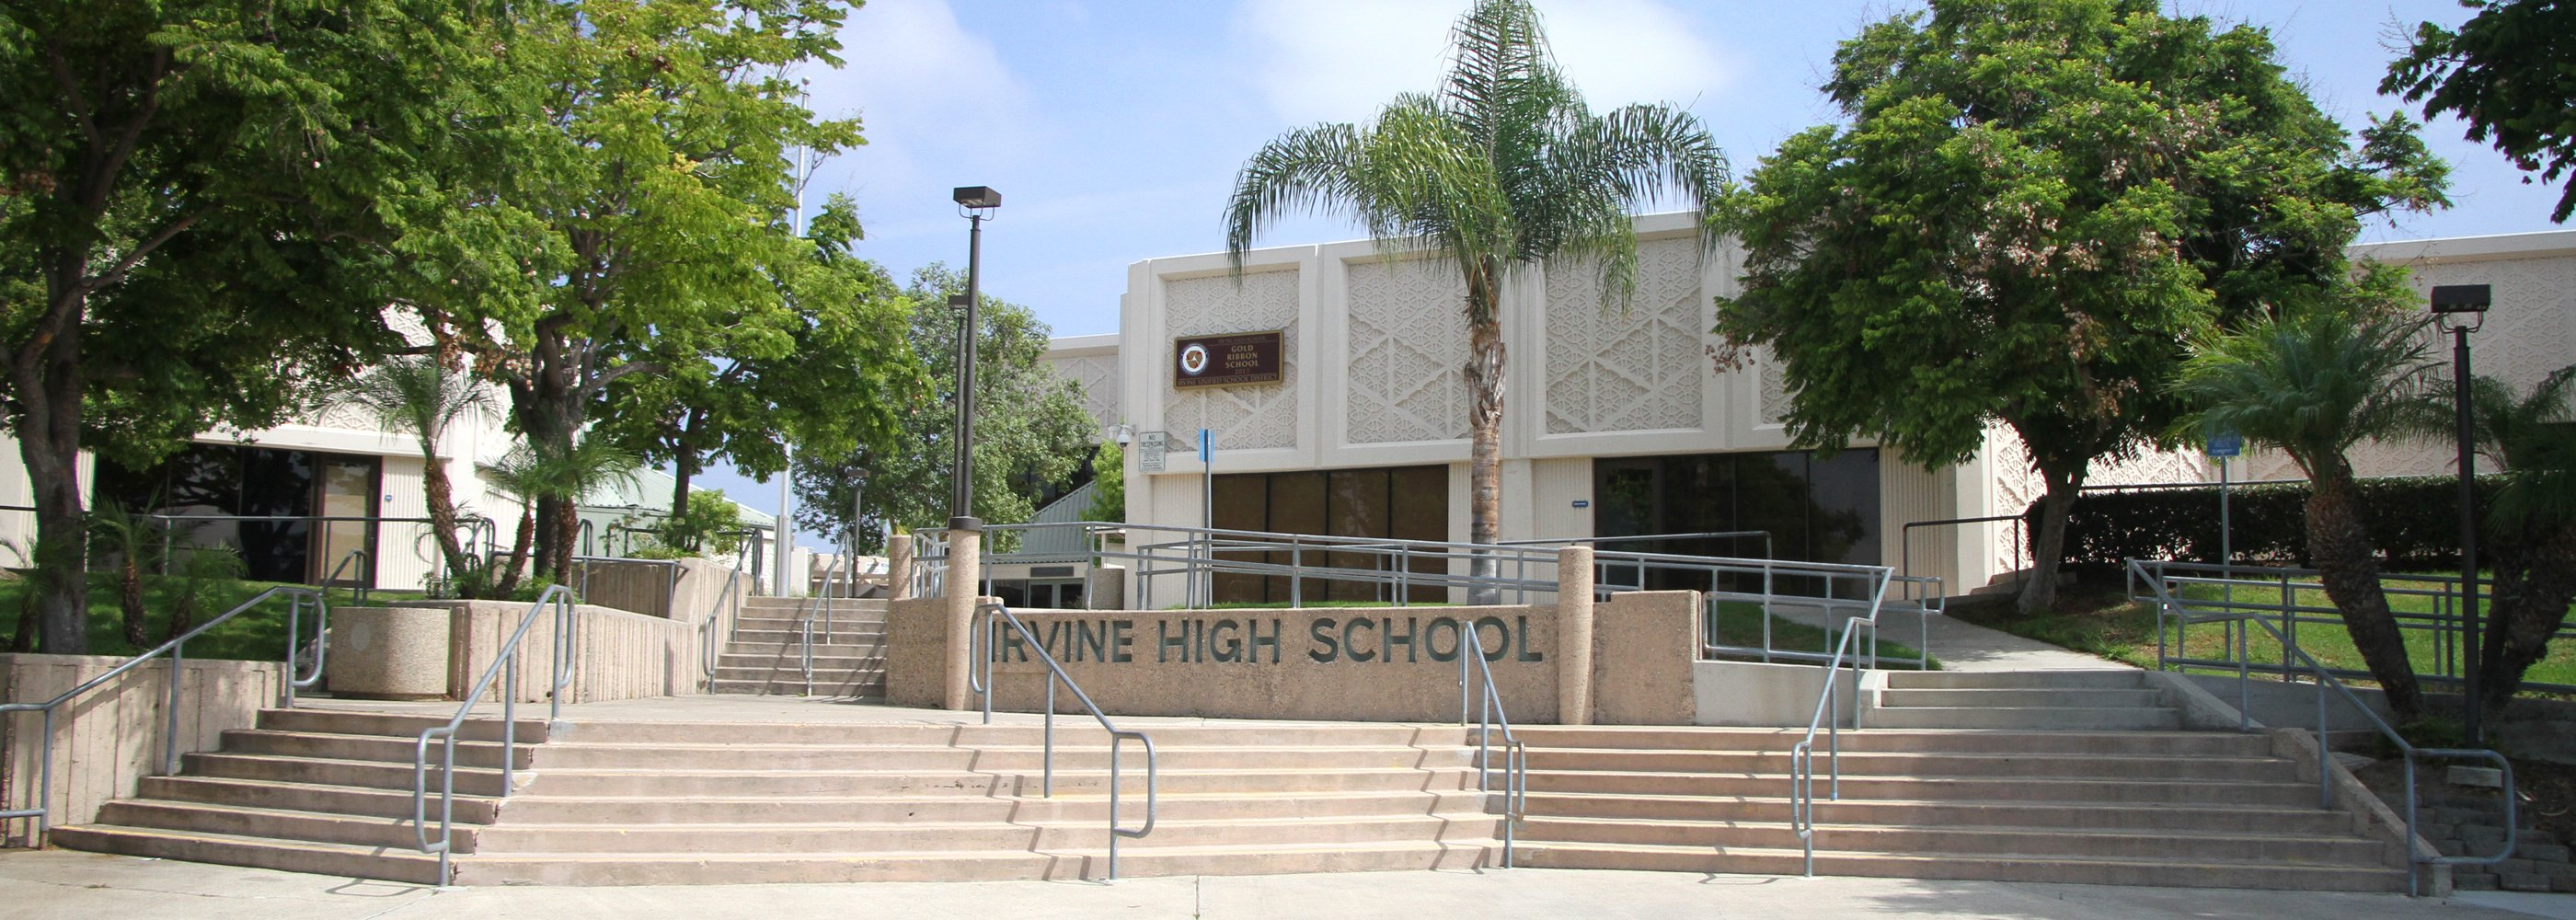 Front of Irvine High School